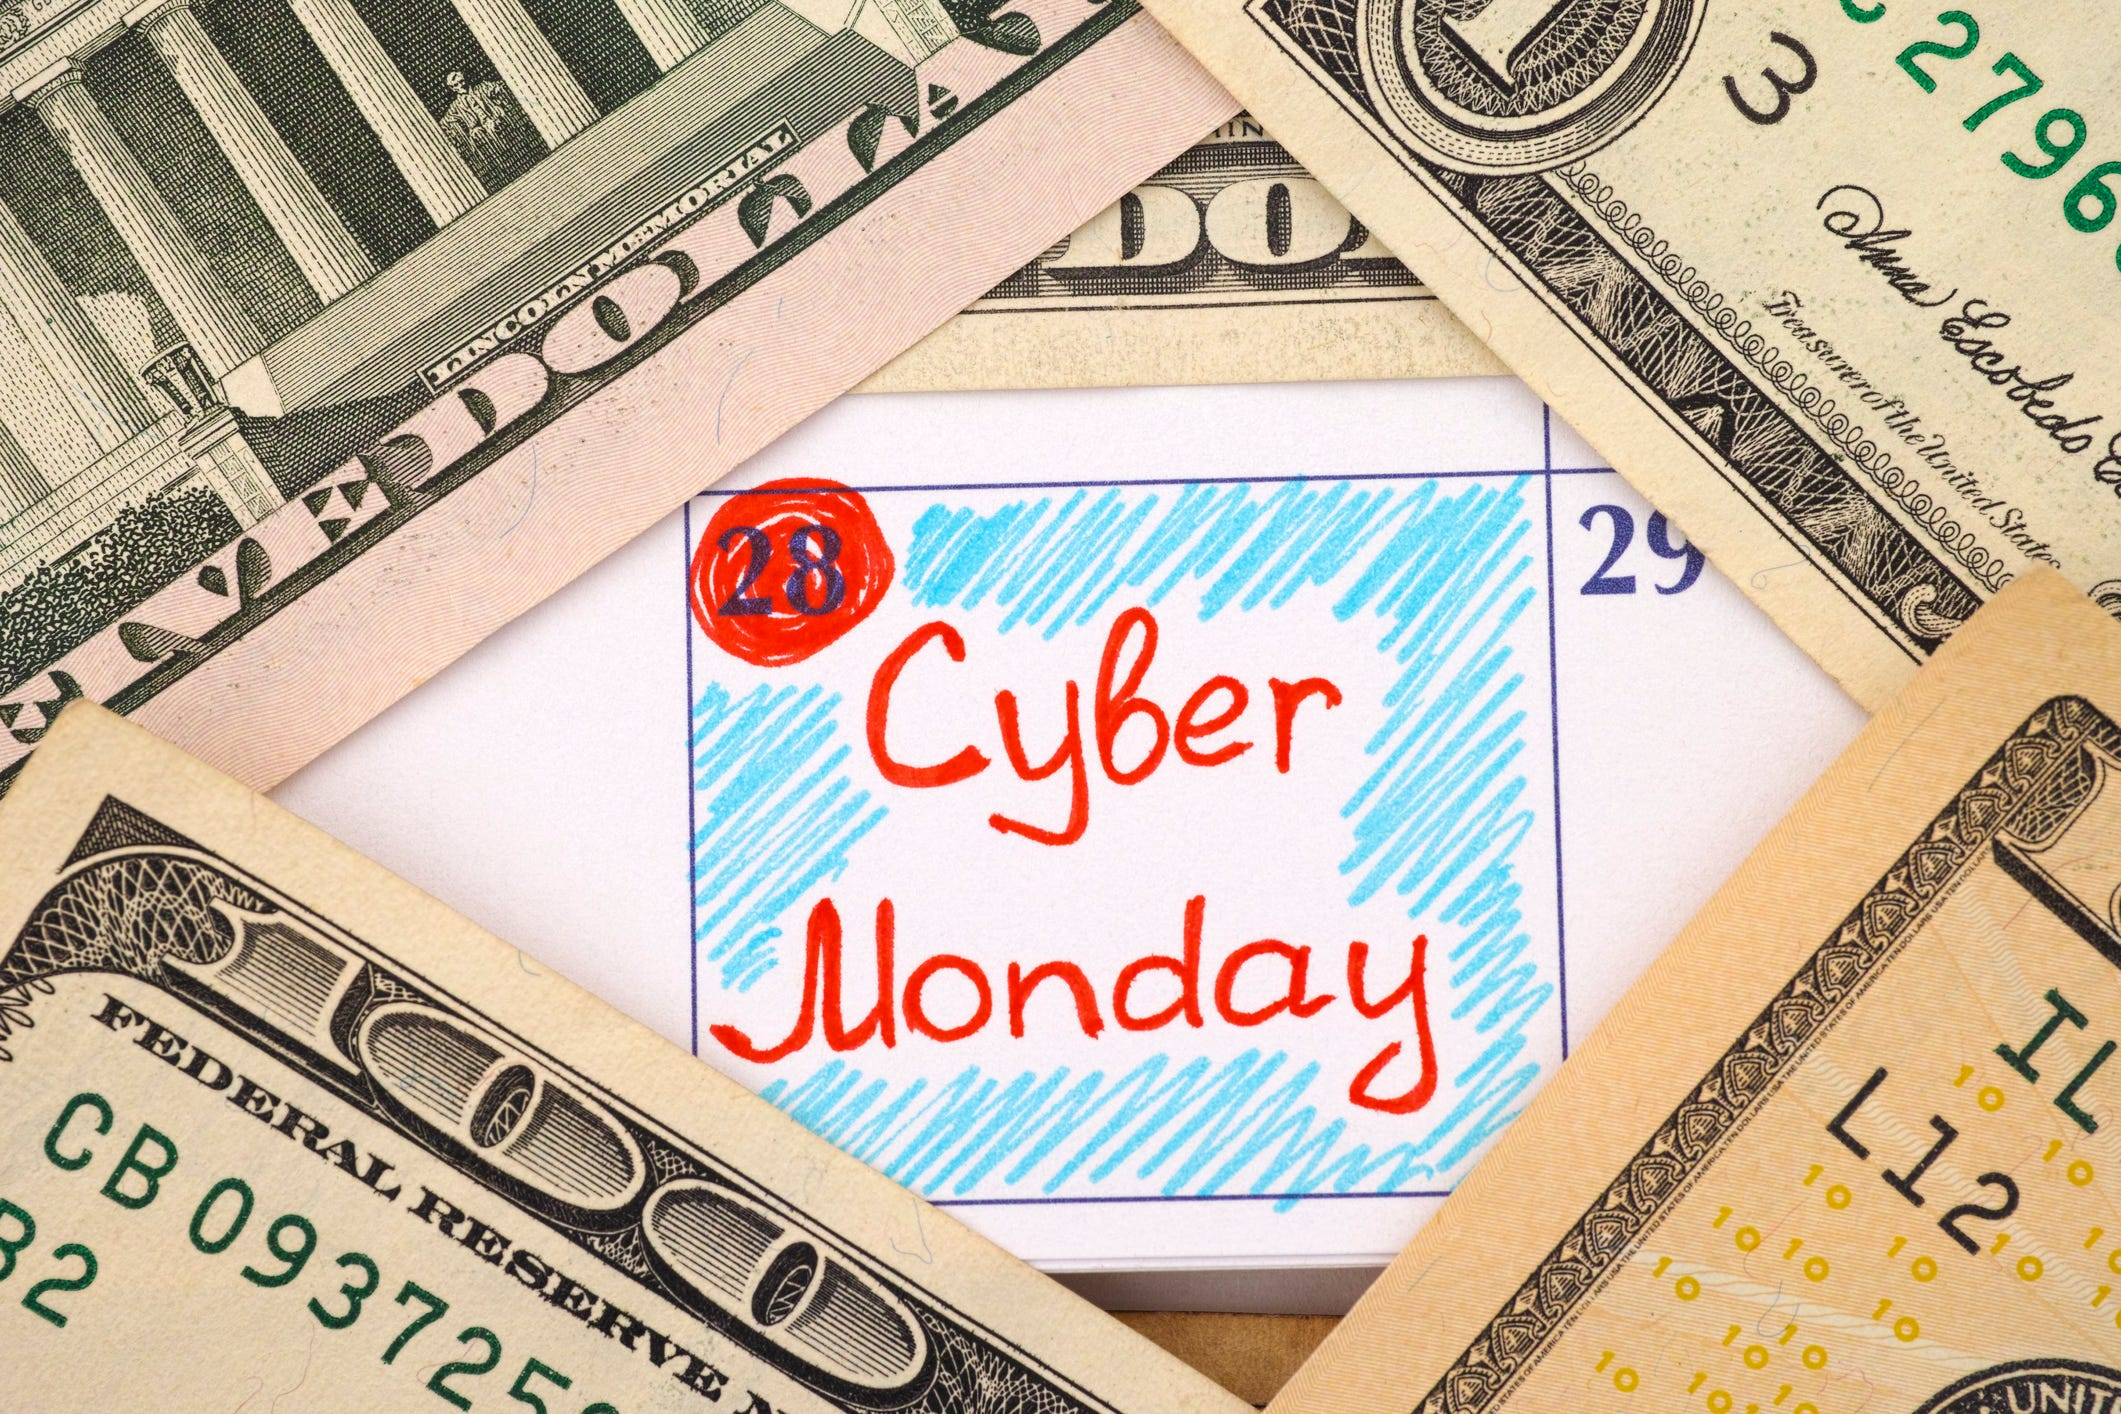 Cyber Monday is forecast to be huge. The reason: can't shake a shopping habit